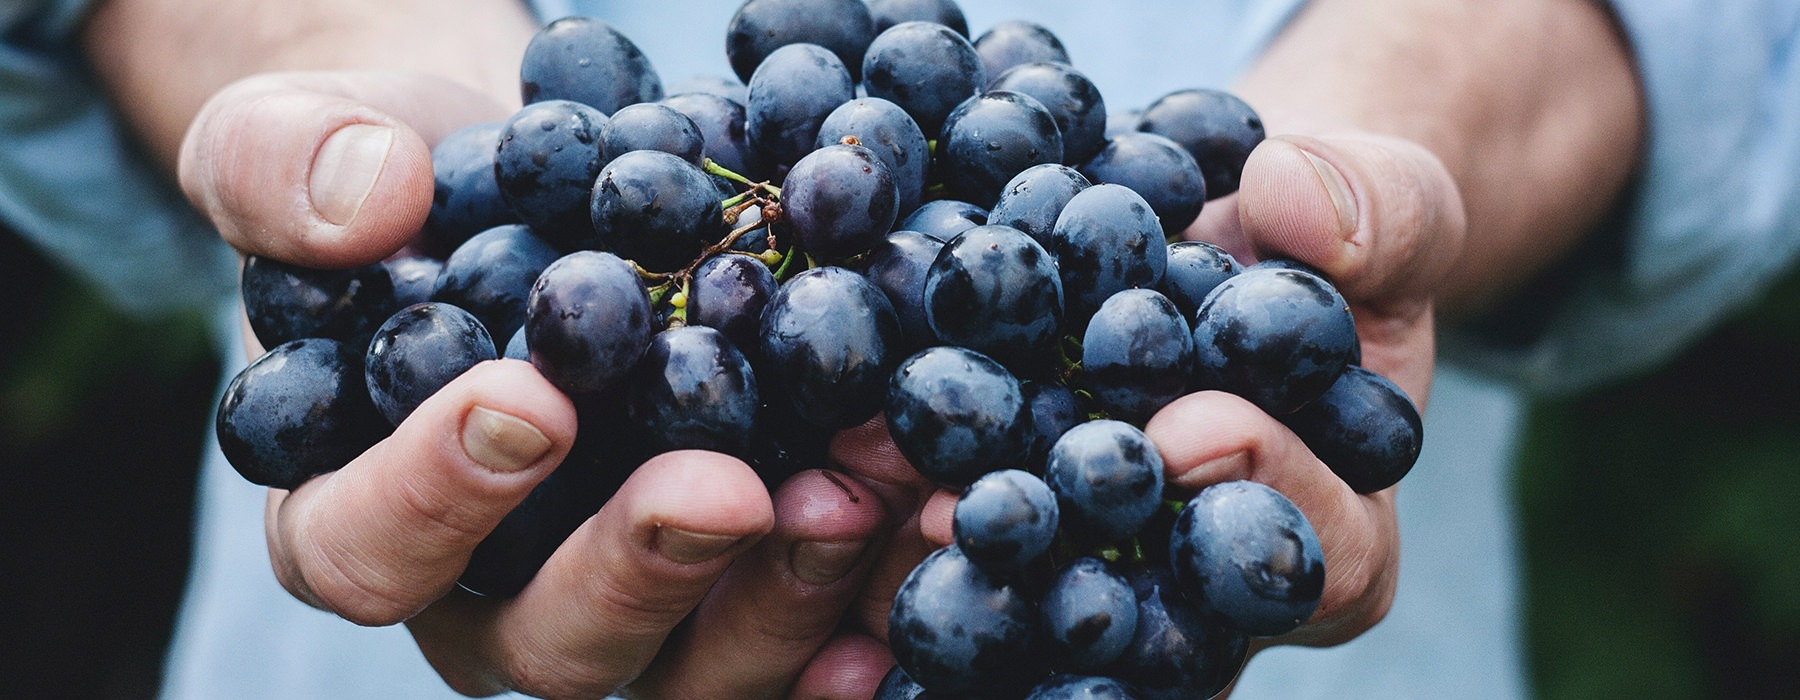 man with a handful of grapes